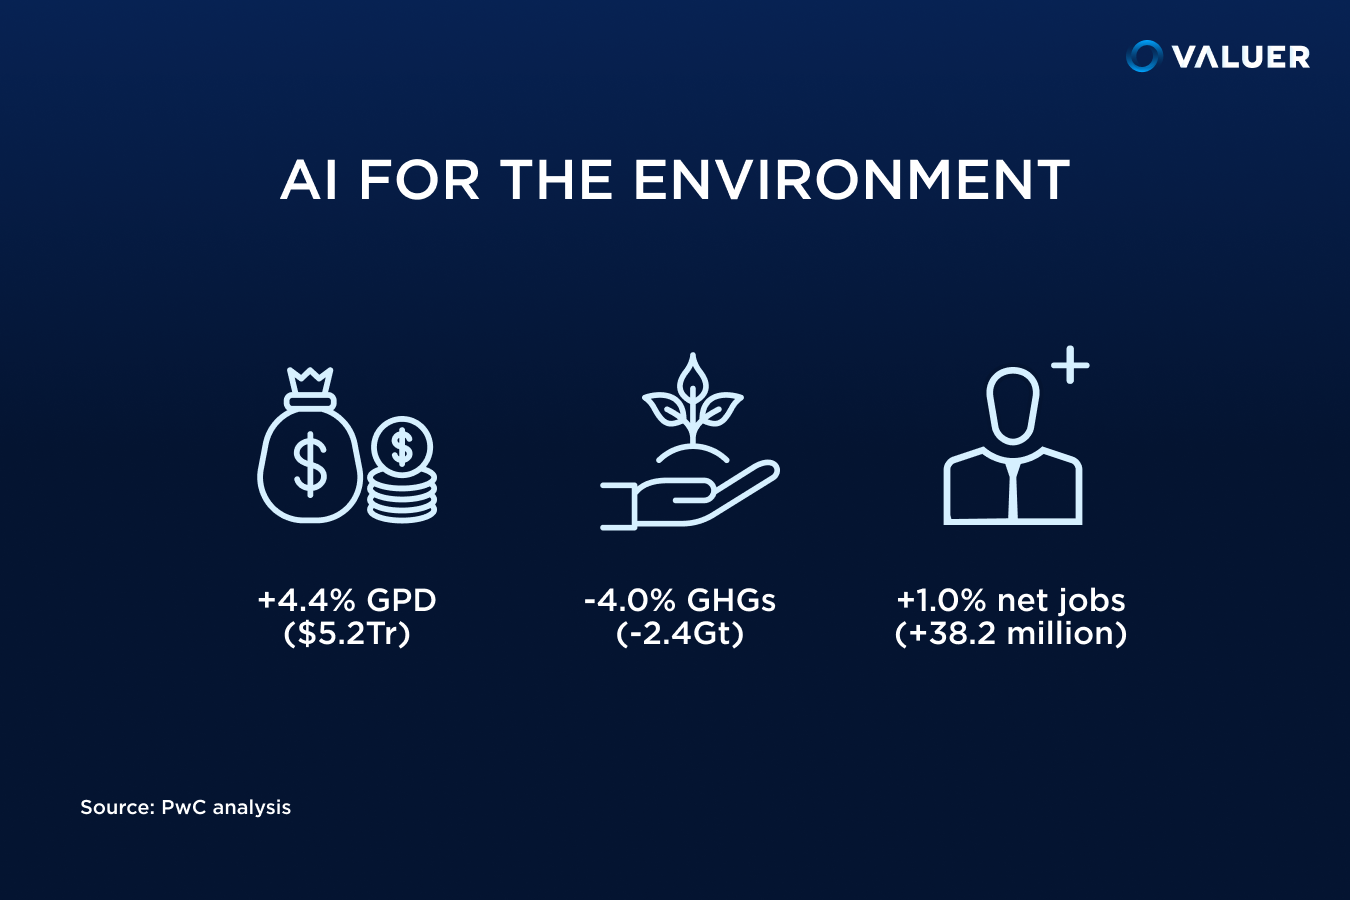 AI for Environment